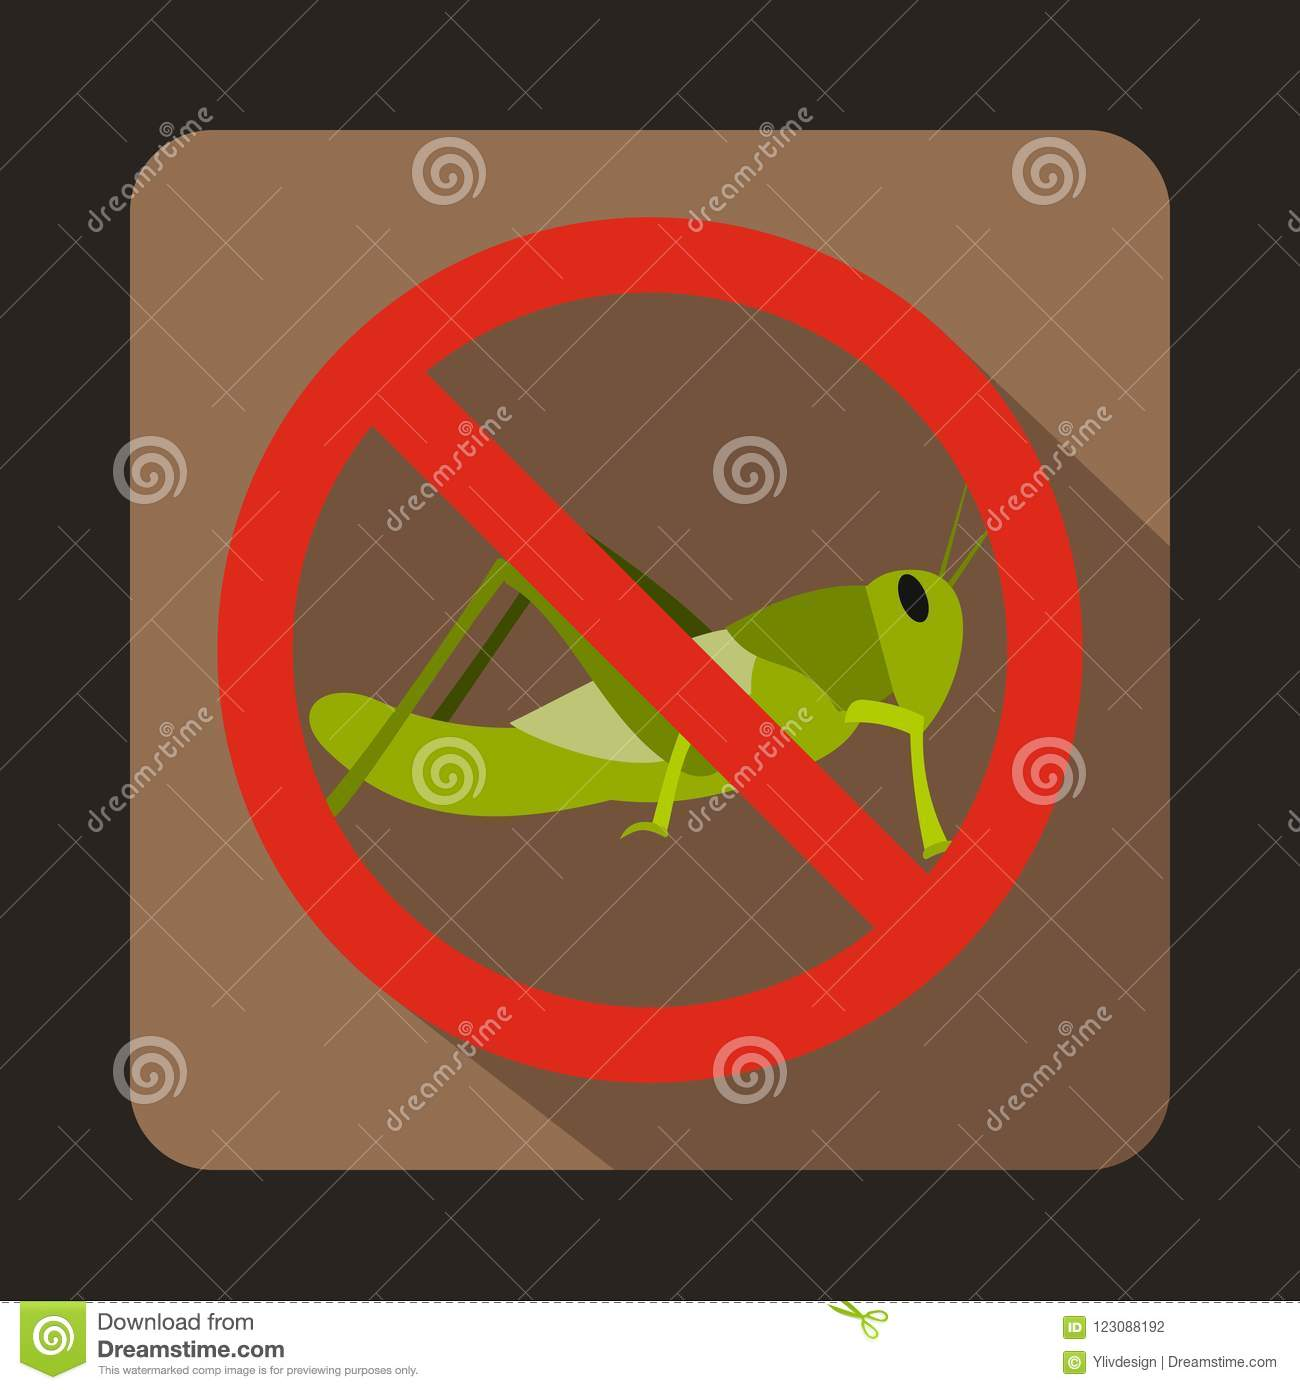 No locust sign icon, flat style